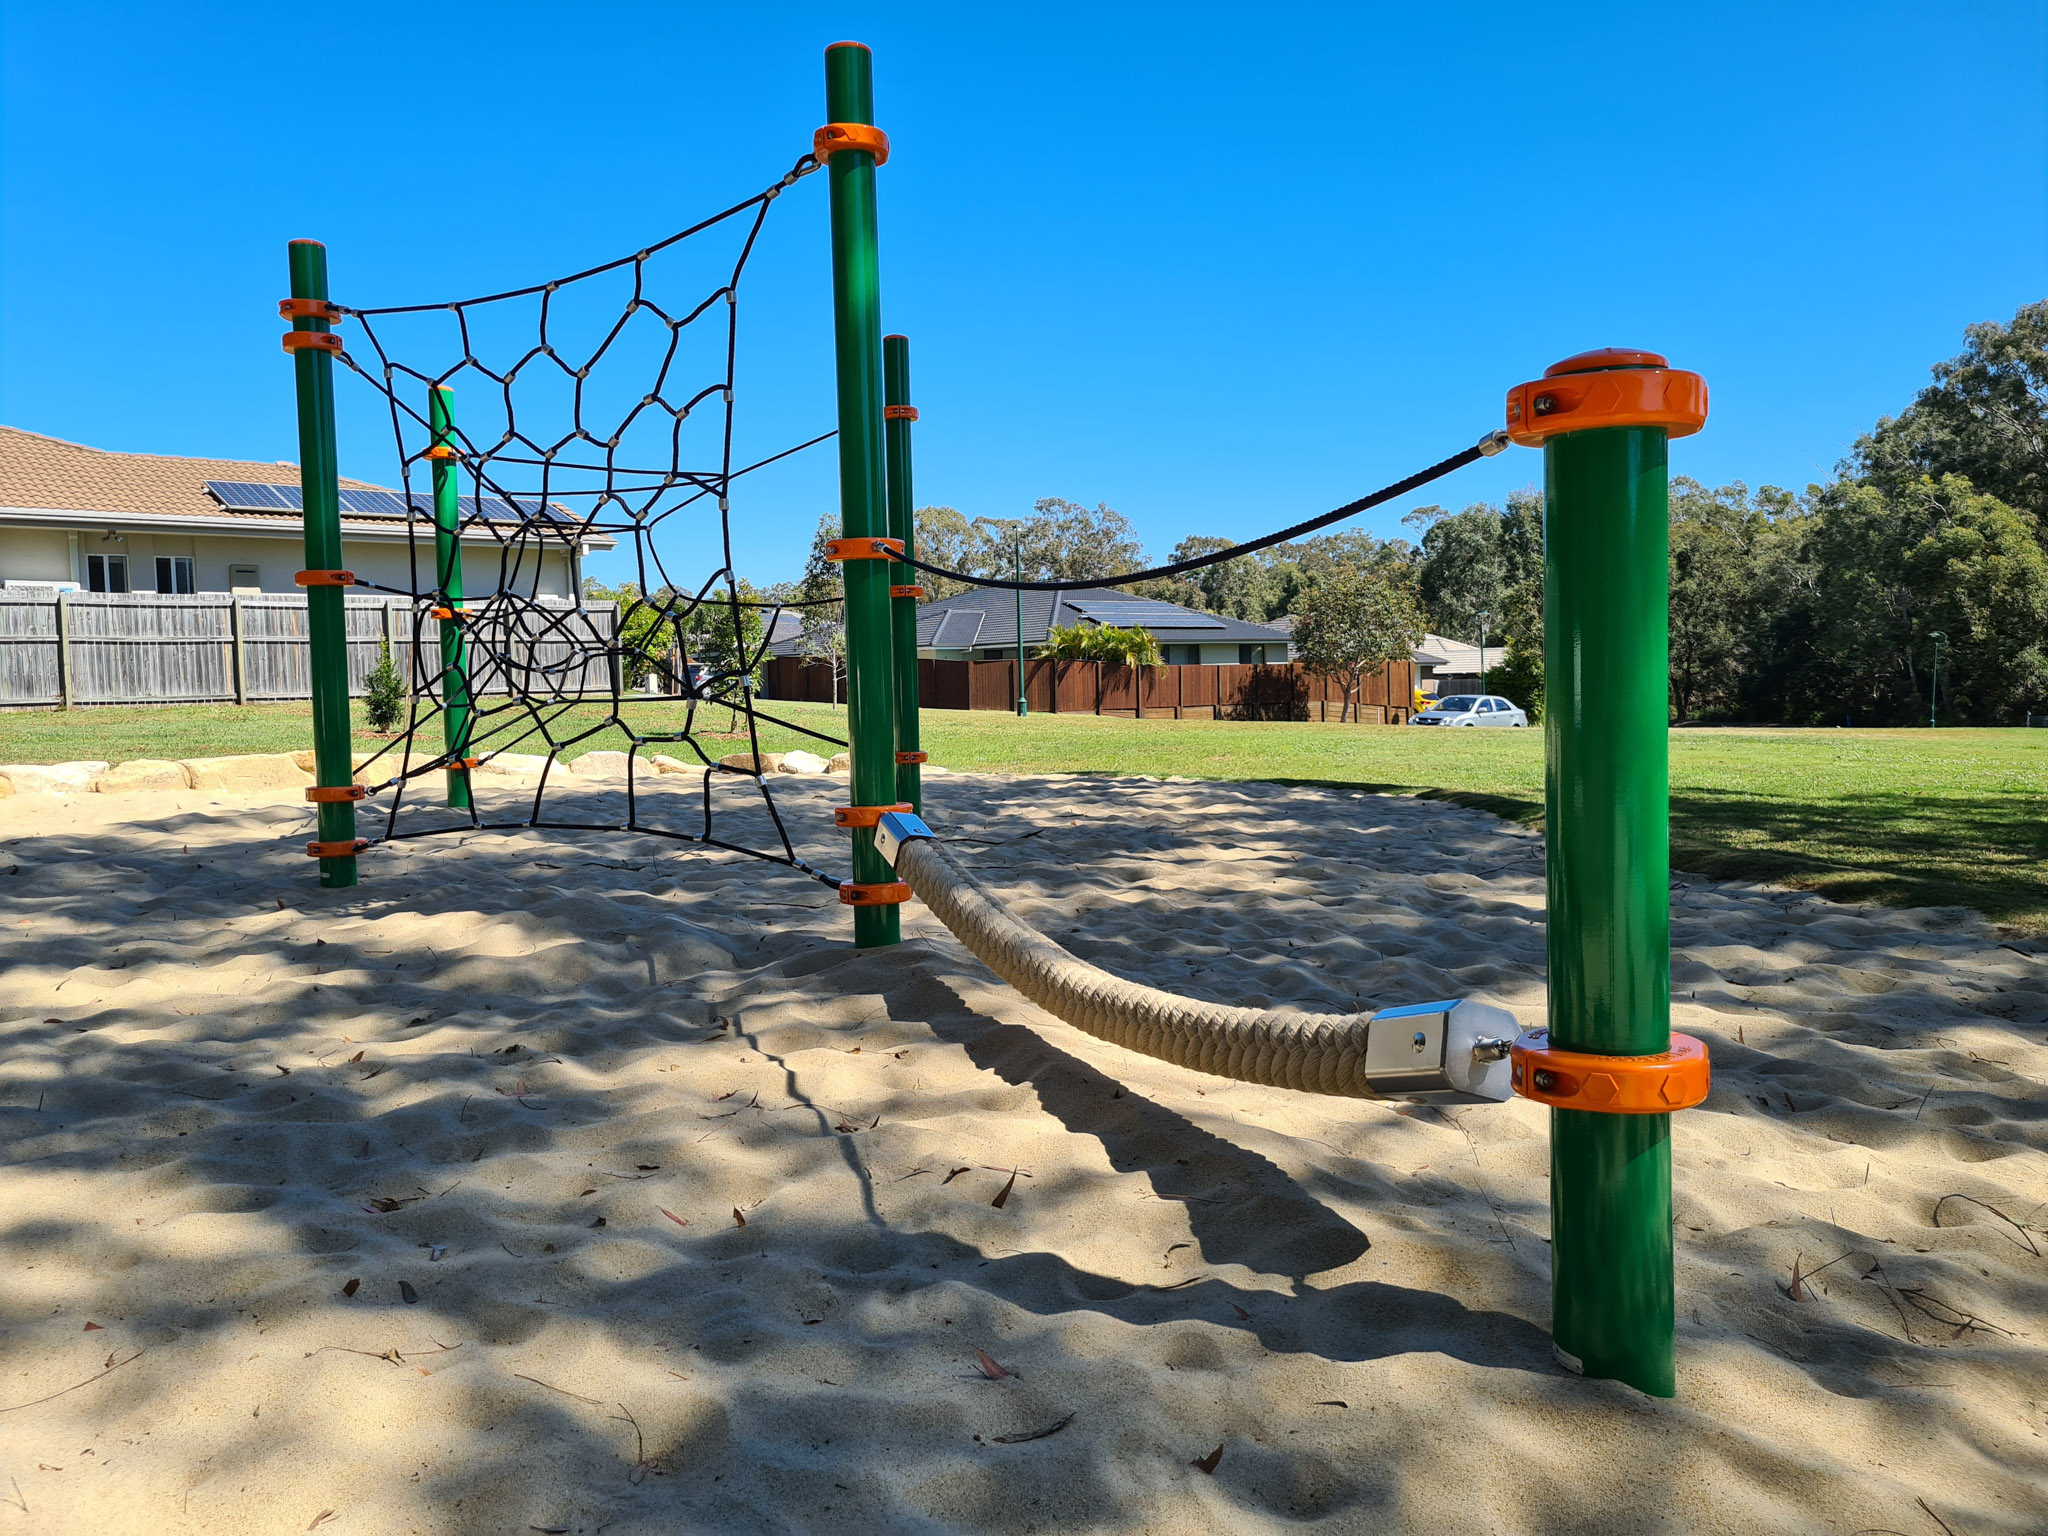 riley-peter-place-park-rope-play-7